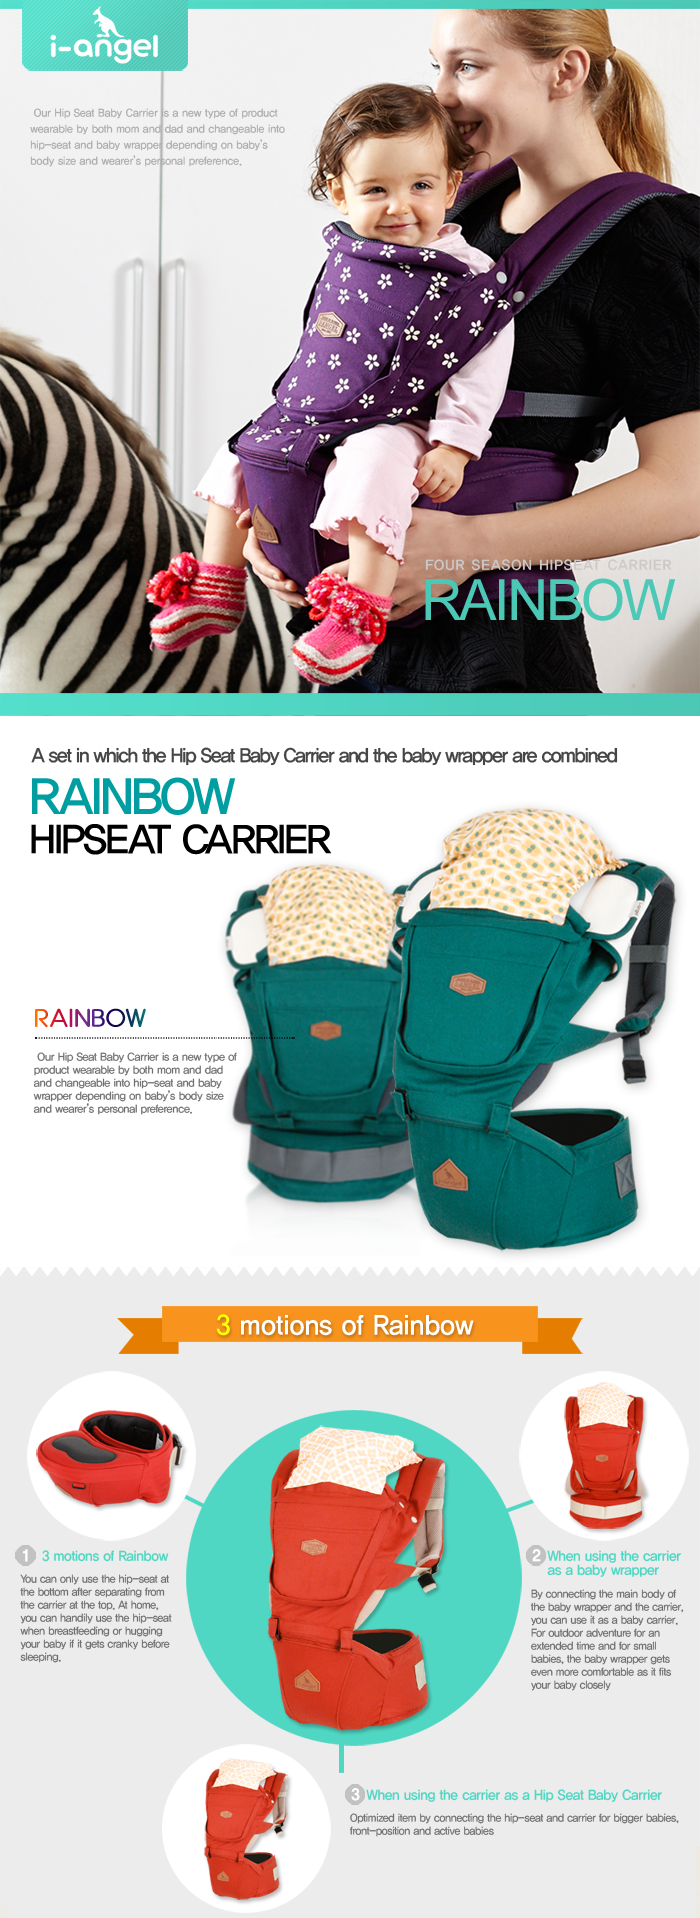 I Angel Rainbow Hipseat Baby Carrier Ohmykids Org